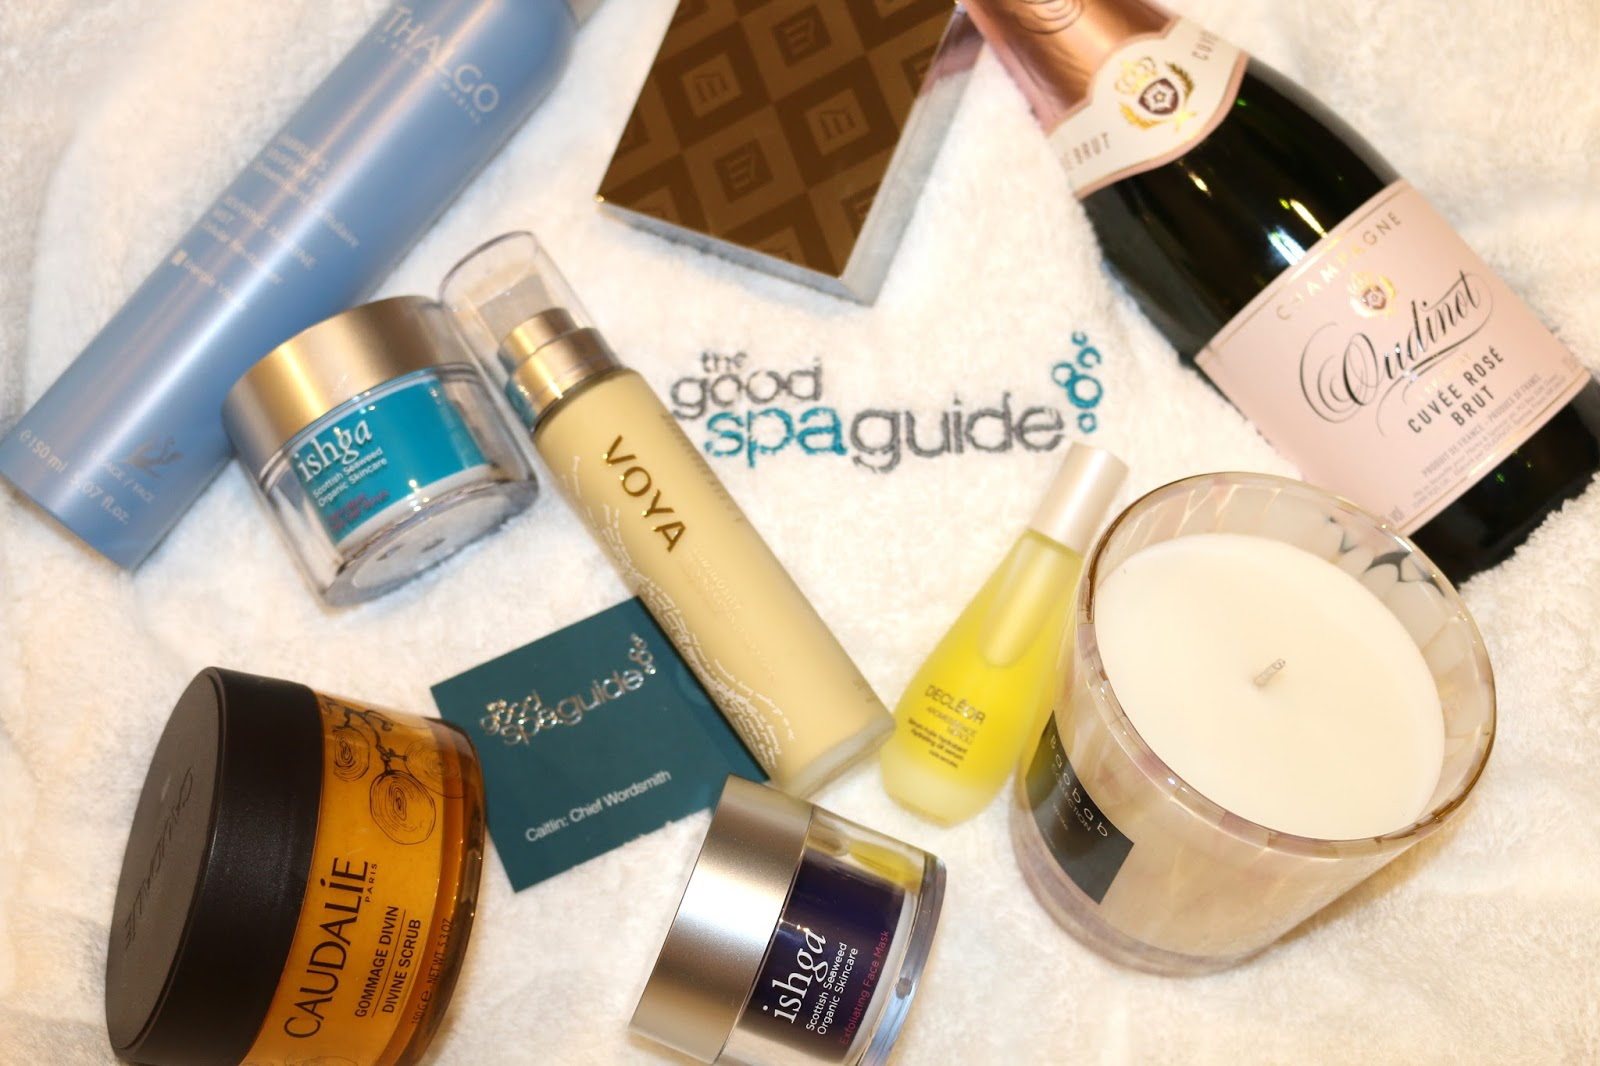 The Good Spa Guide, Hamper of Spa Products!